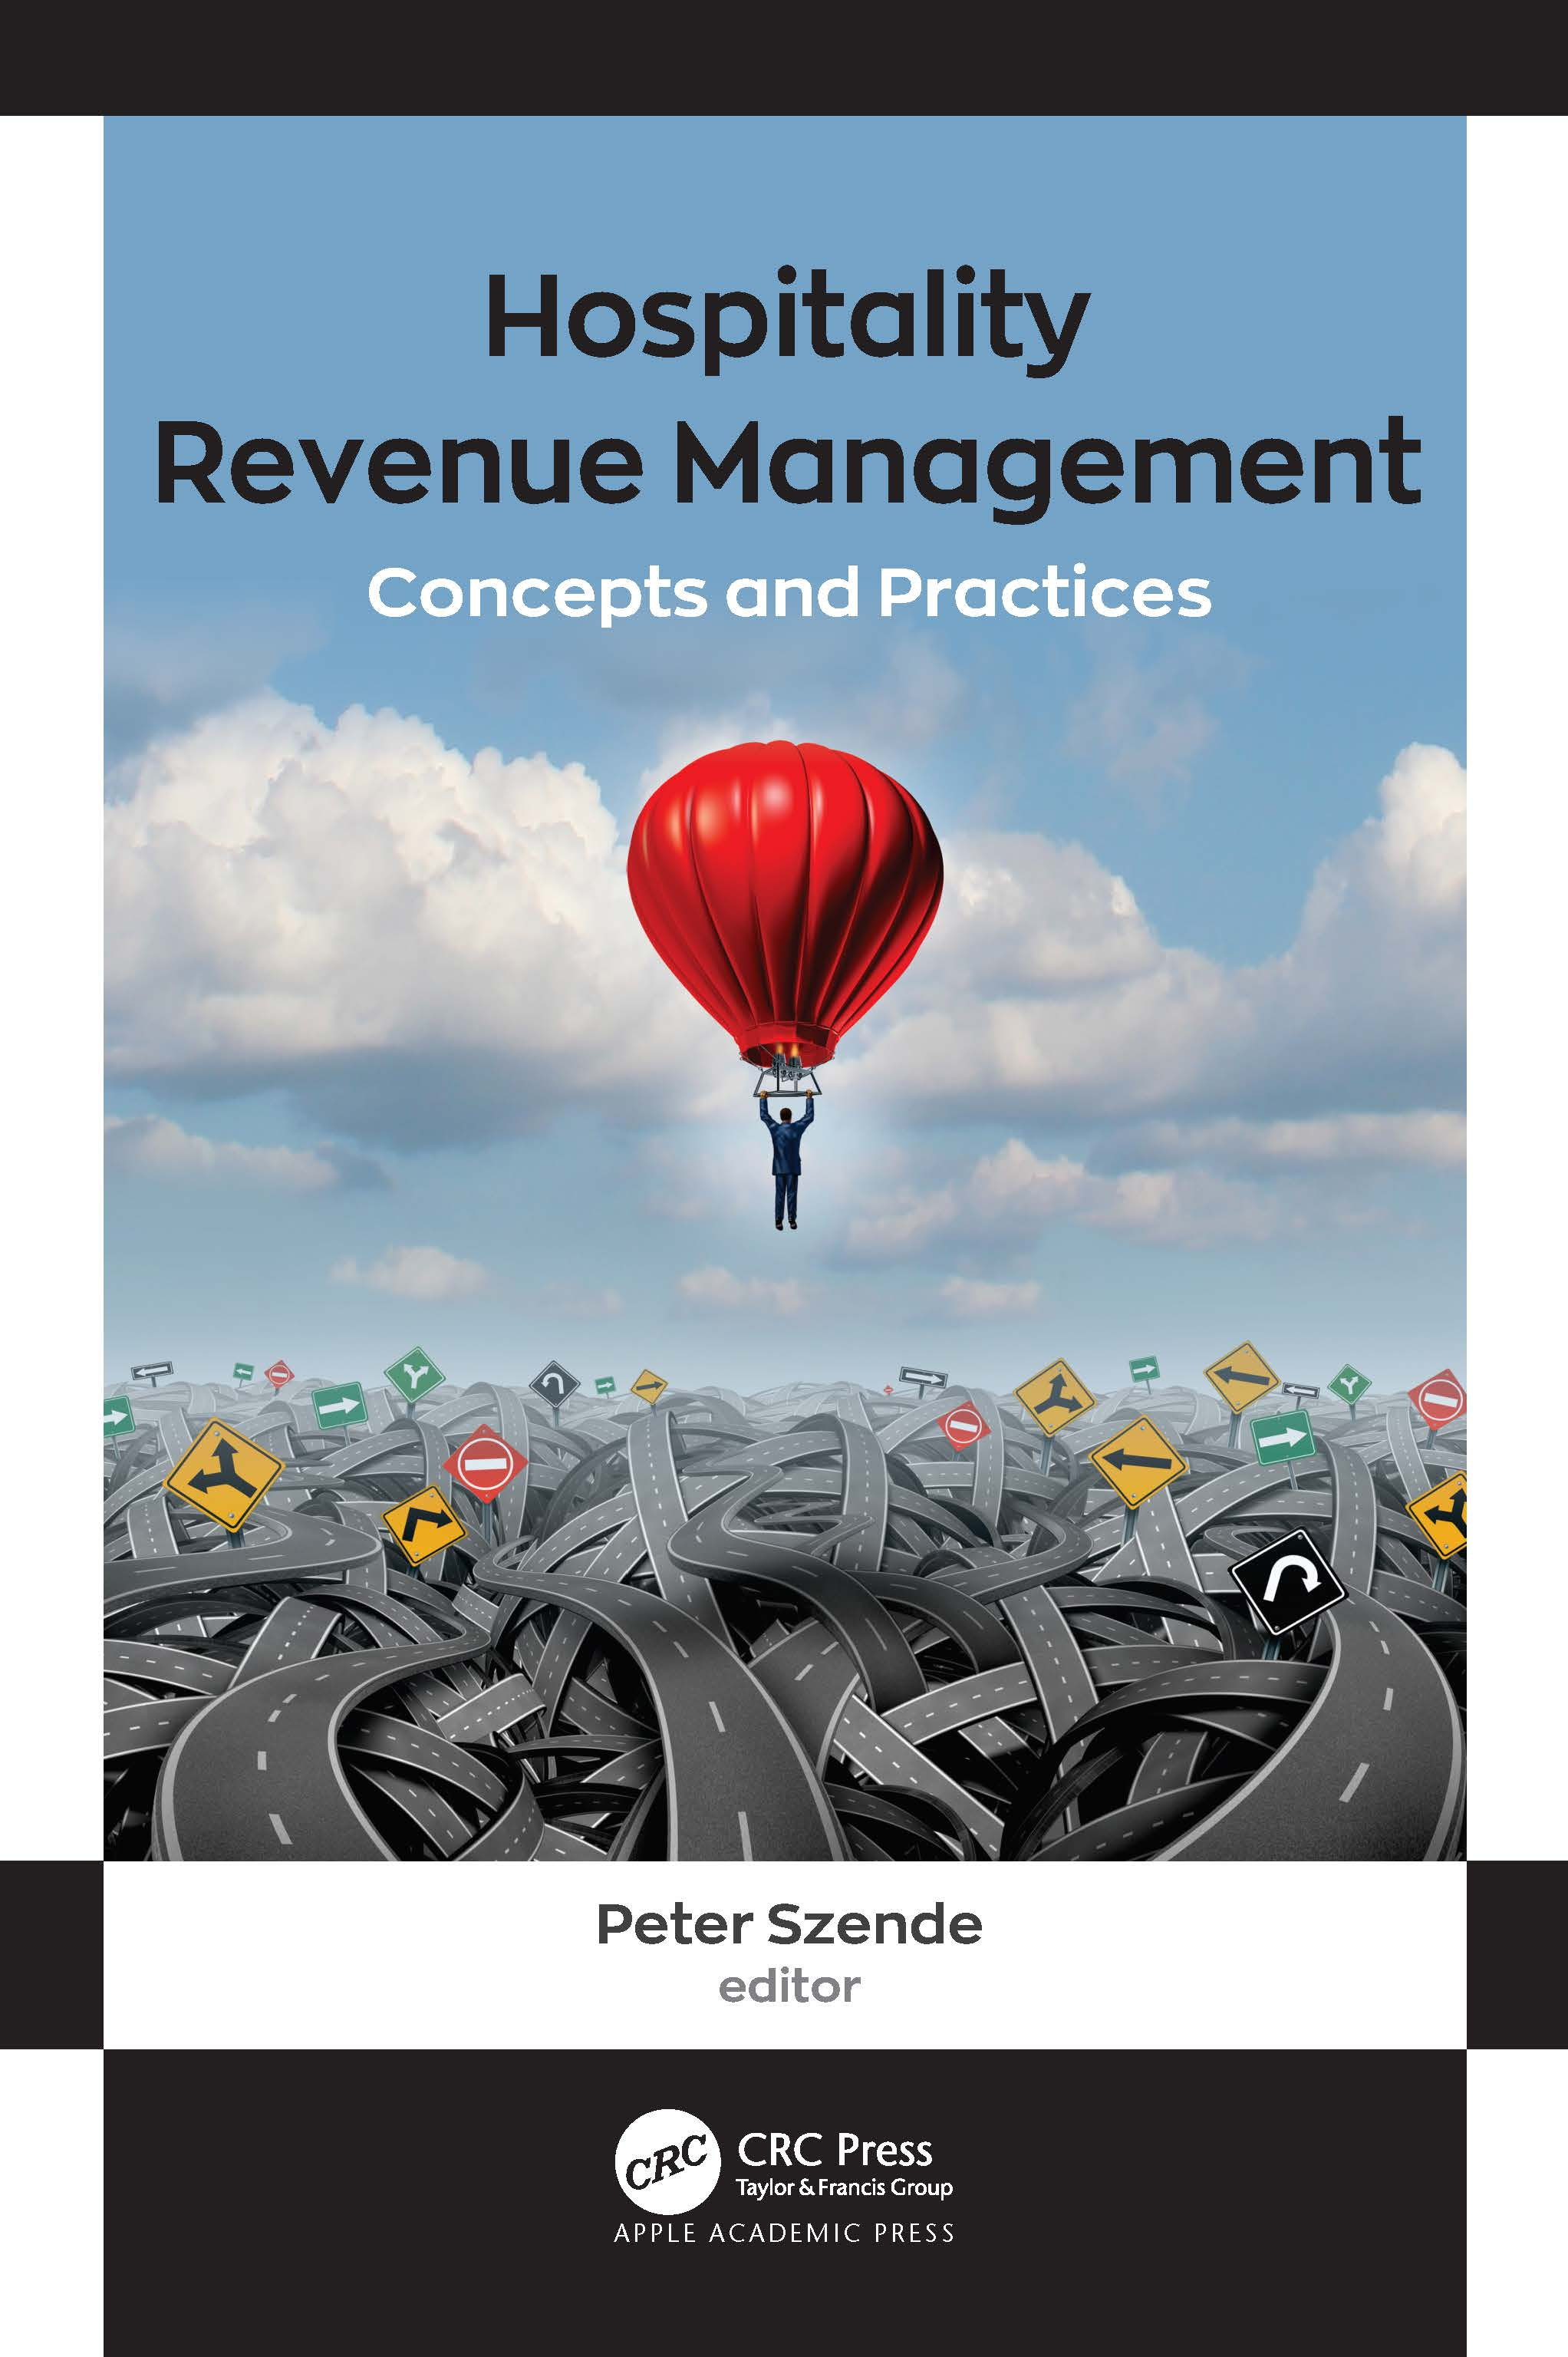 Hospitality Revenue Management: Concepts and Practices book cover